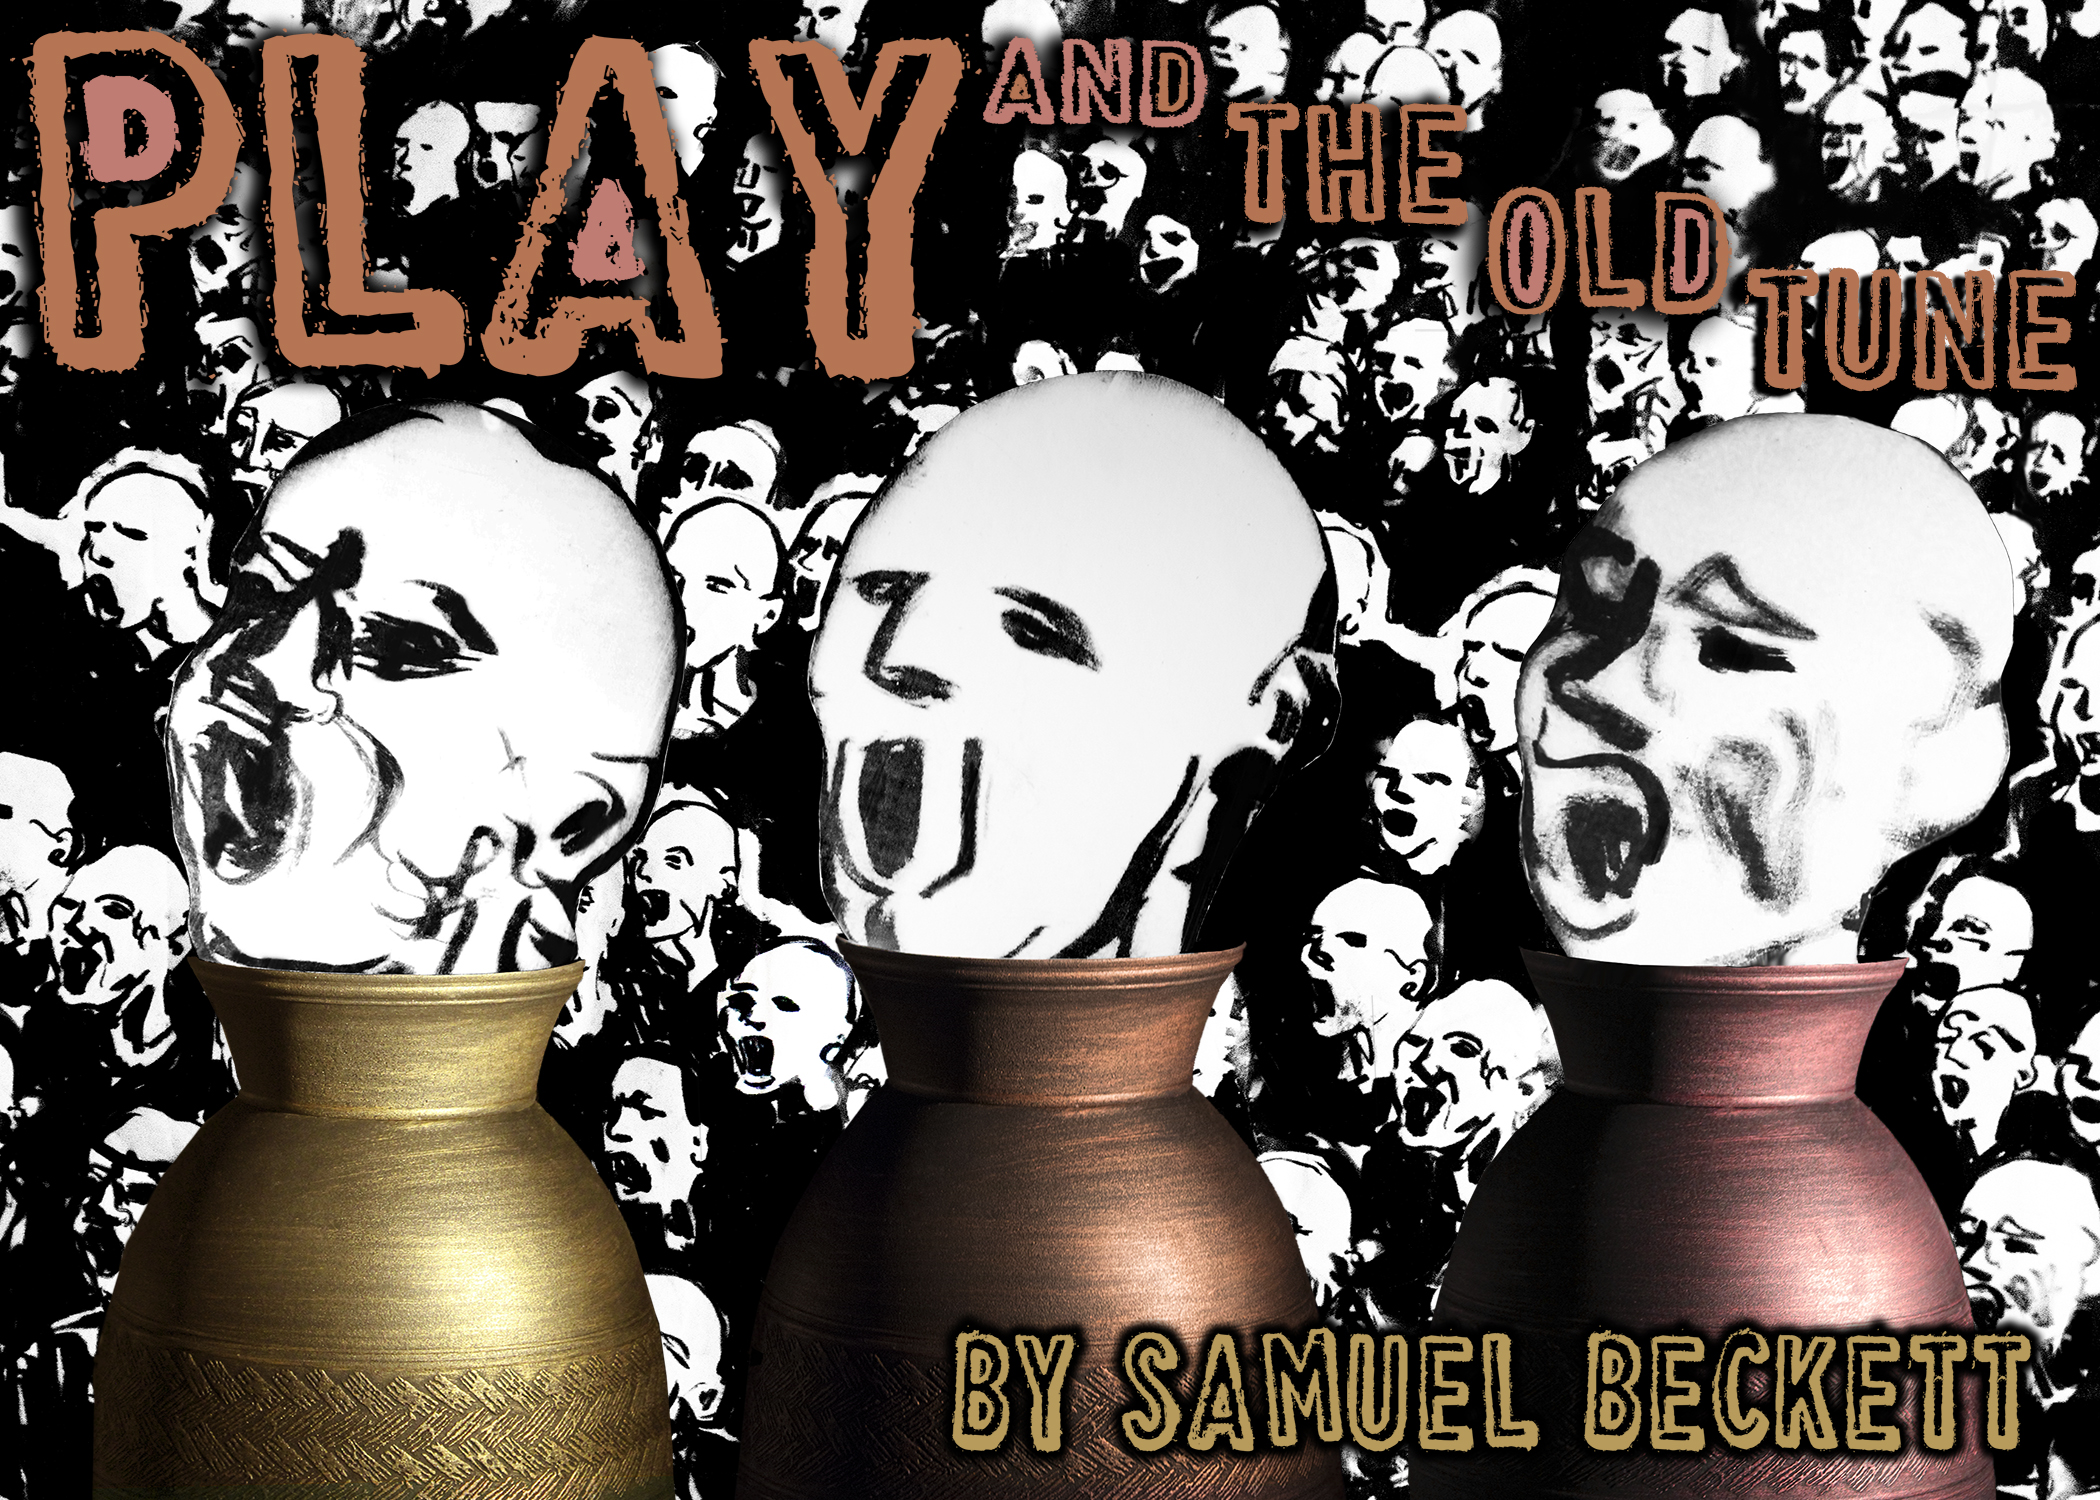 Poster for Play by Samuel Beckett